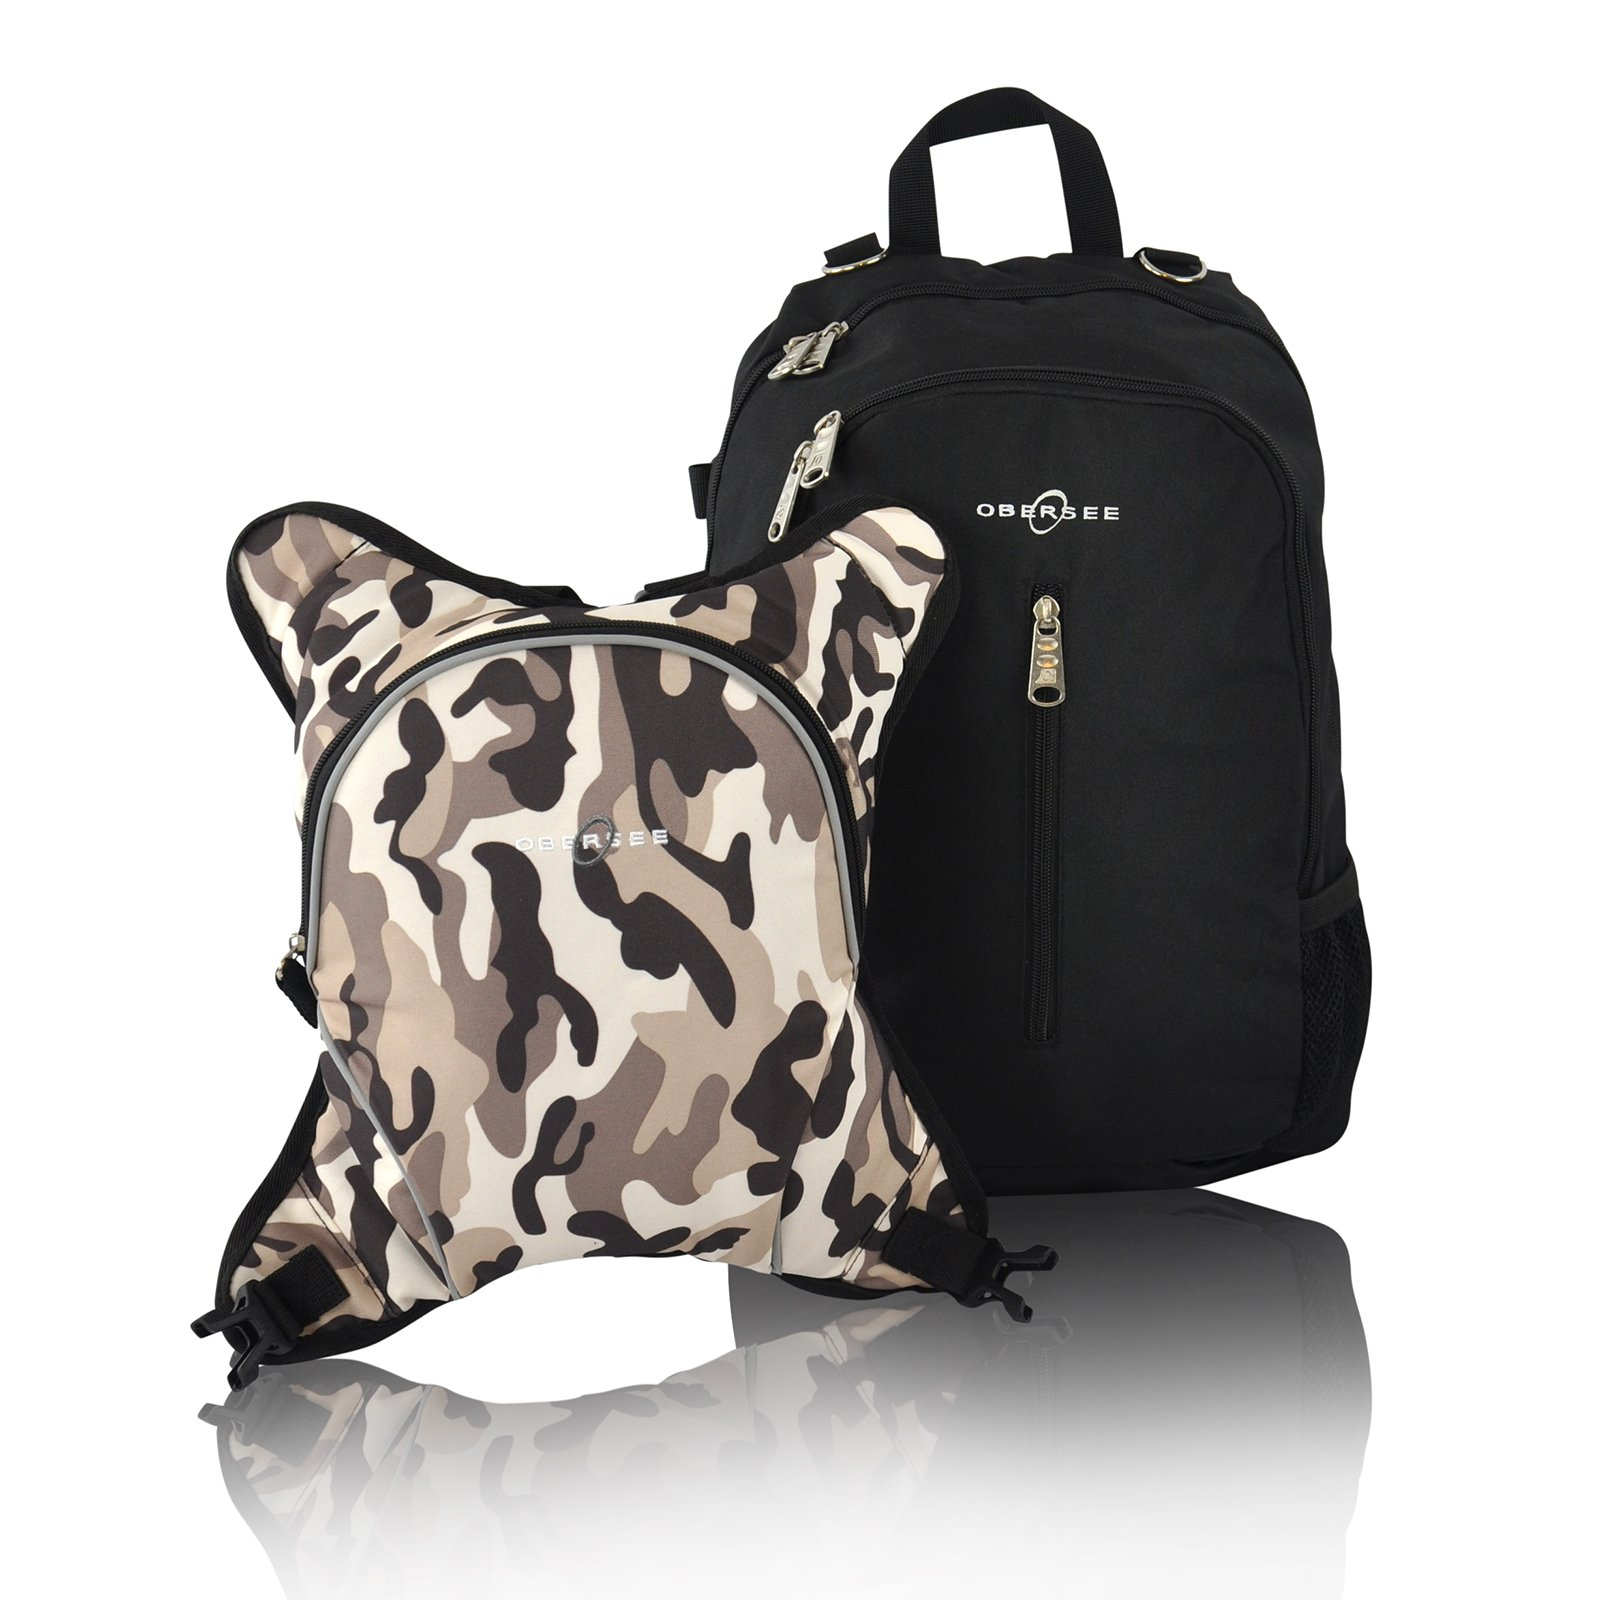 Rio Diaper Backpack with Baby Bottle Cooler and Changing Mat, Shoulder Baby Bag, Food Cooler, Clip to Stroller (Black/Camo) - Obersee